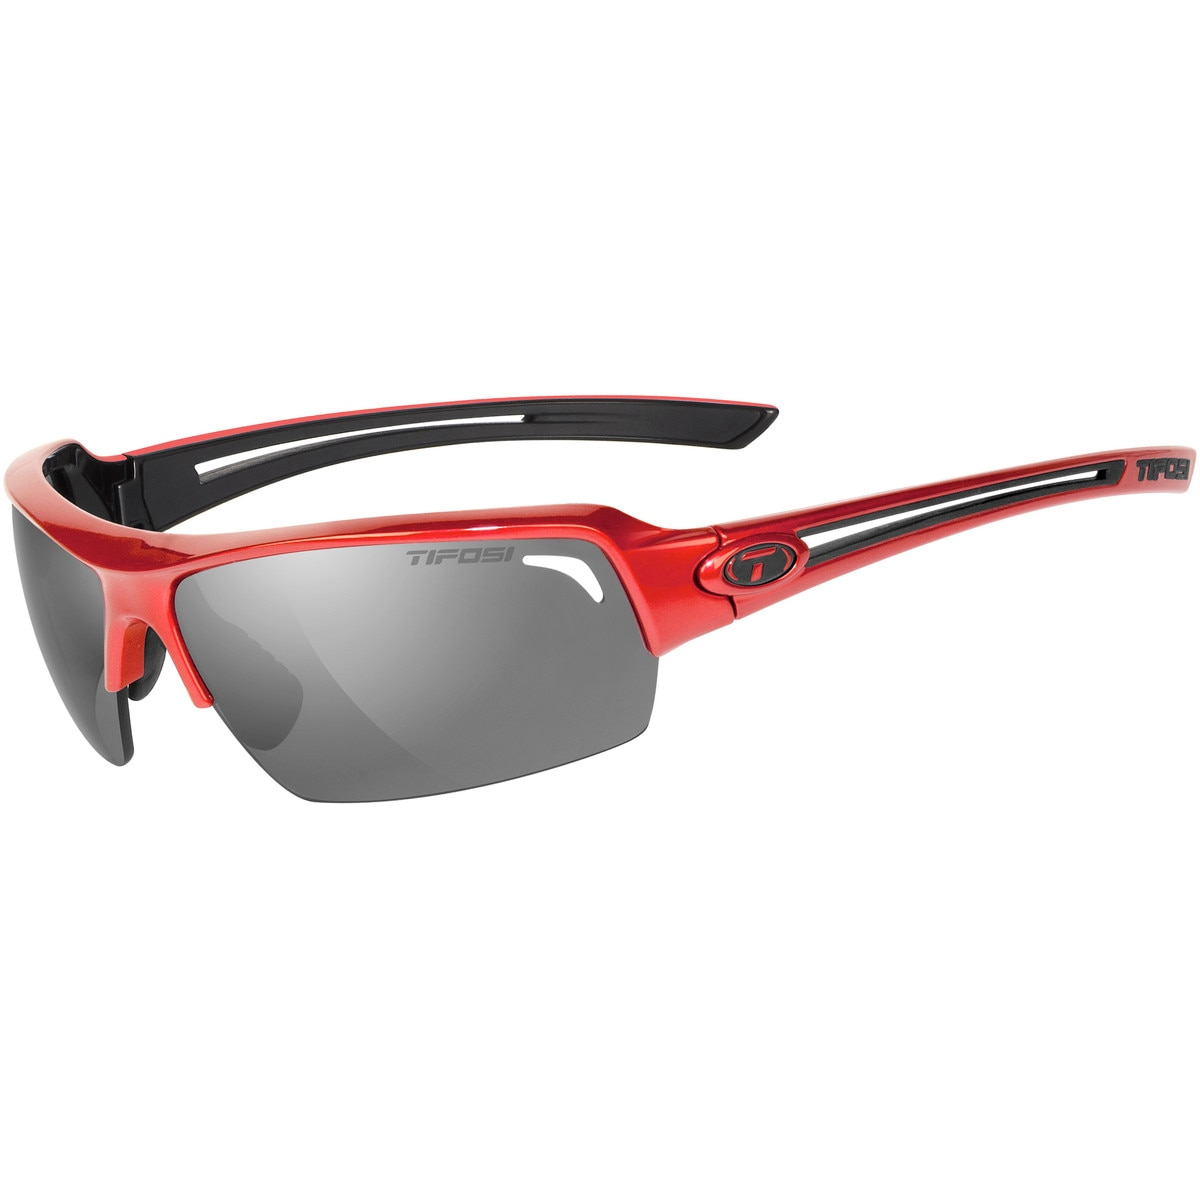 Tifosi Optics Just Sunglasses Polarized Men's